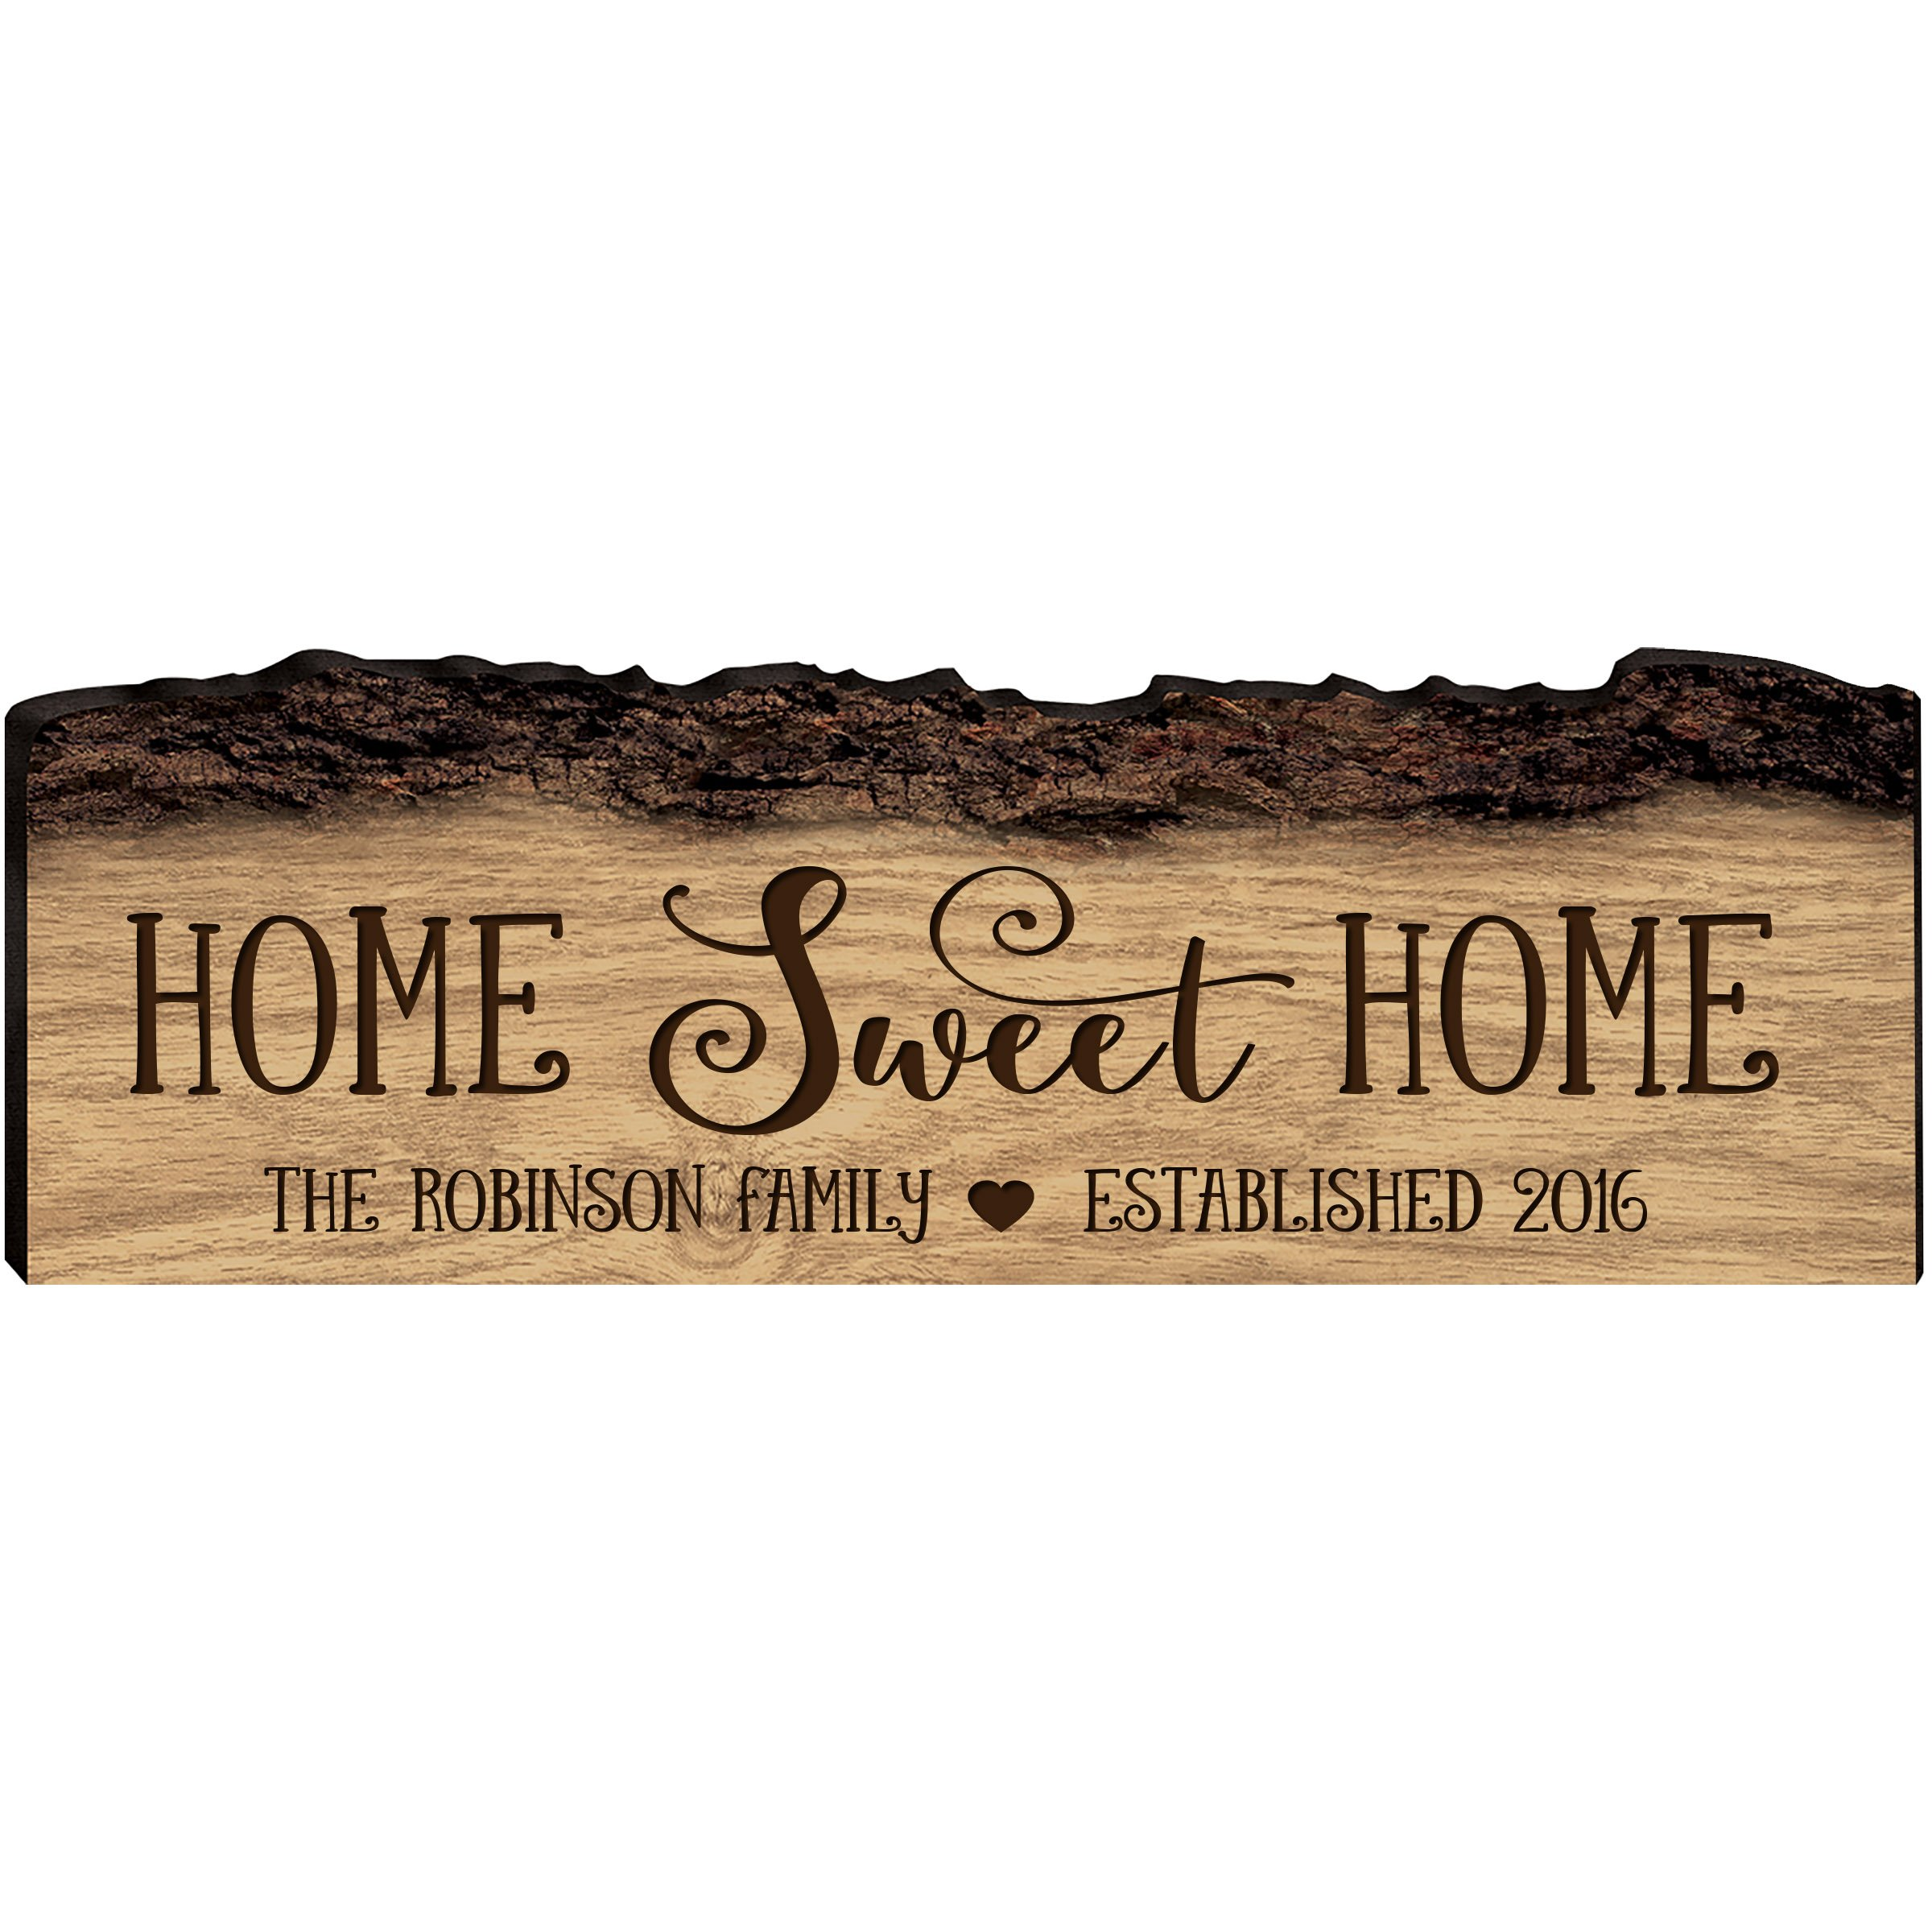 Personalized Family Gift Custom Family Name Sign With Established Date Engraved with Family Name Home Sweet Home Wall Plaque By LifeSong Milestones (Home Sweet Home)